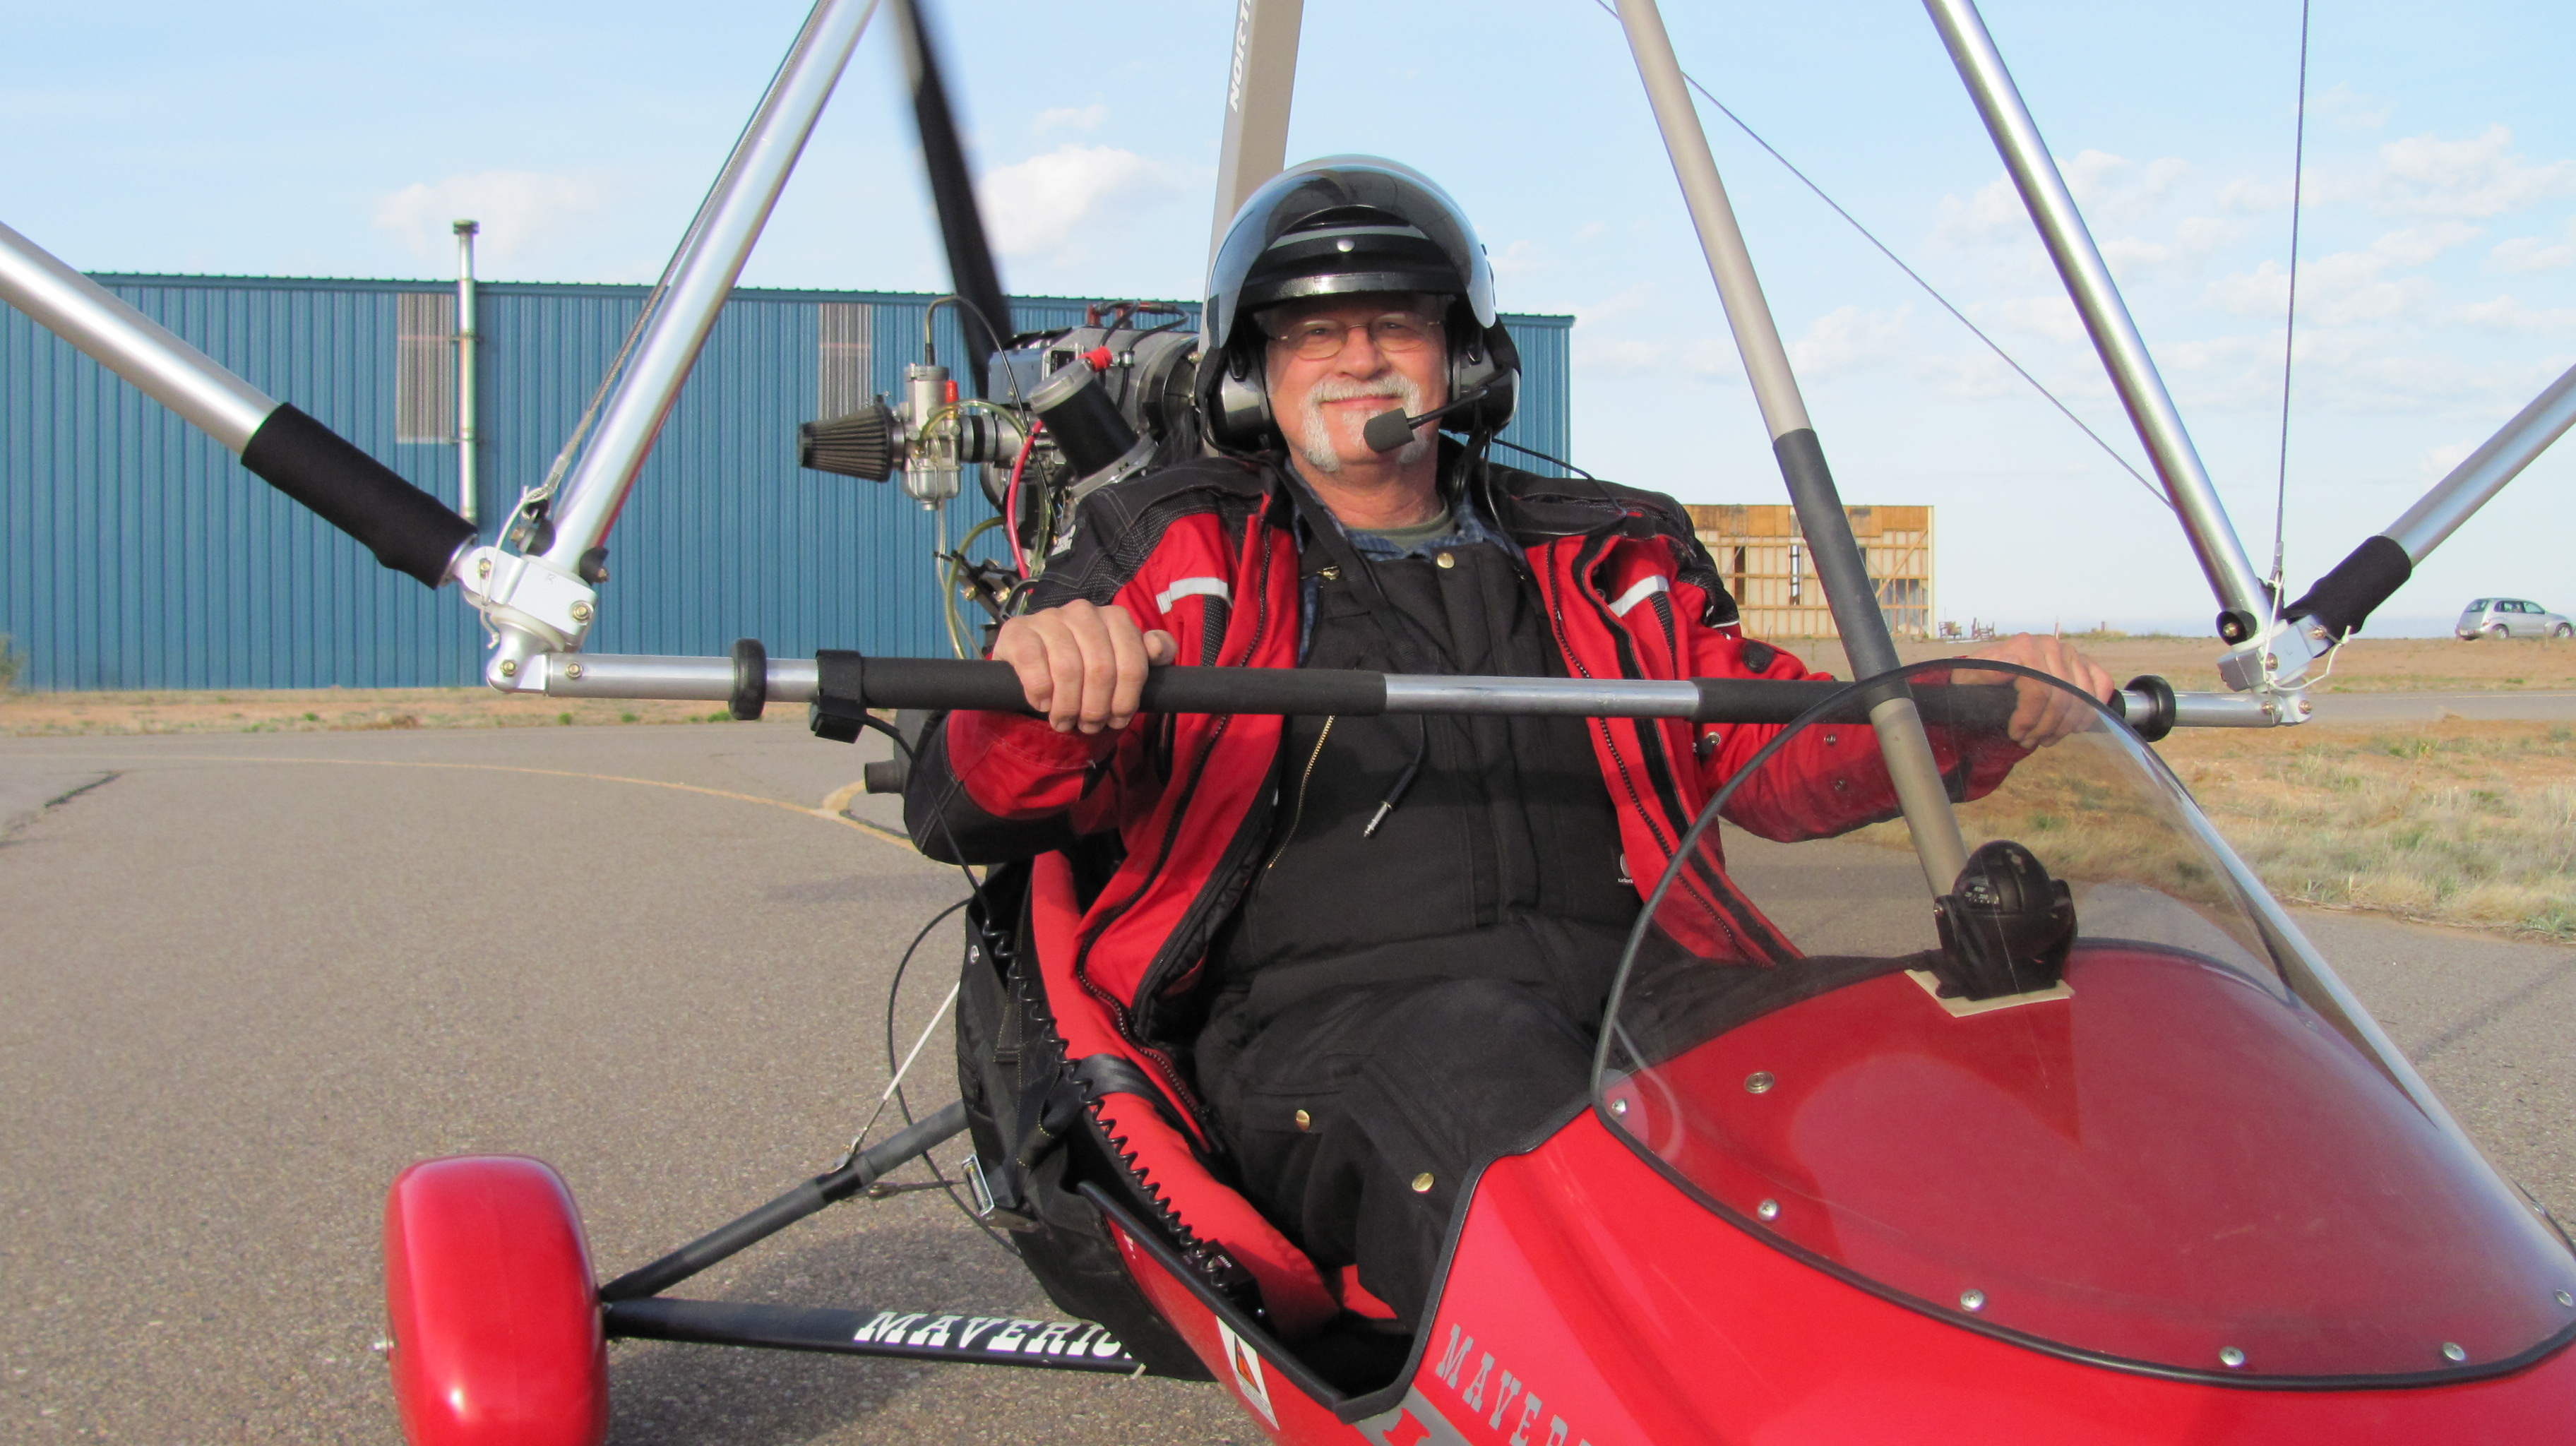 New Mexico Trikes and Hang Glider Rides, CFI, Aeros trikes and wings